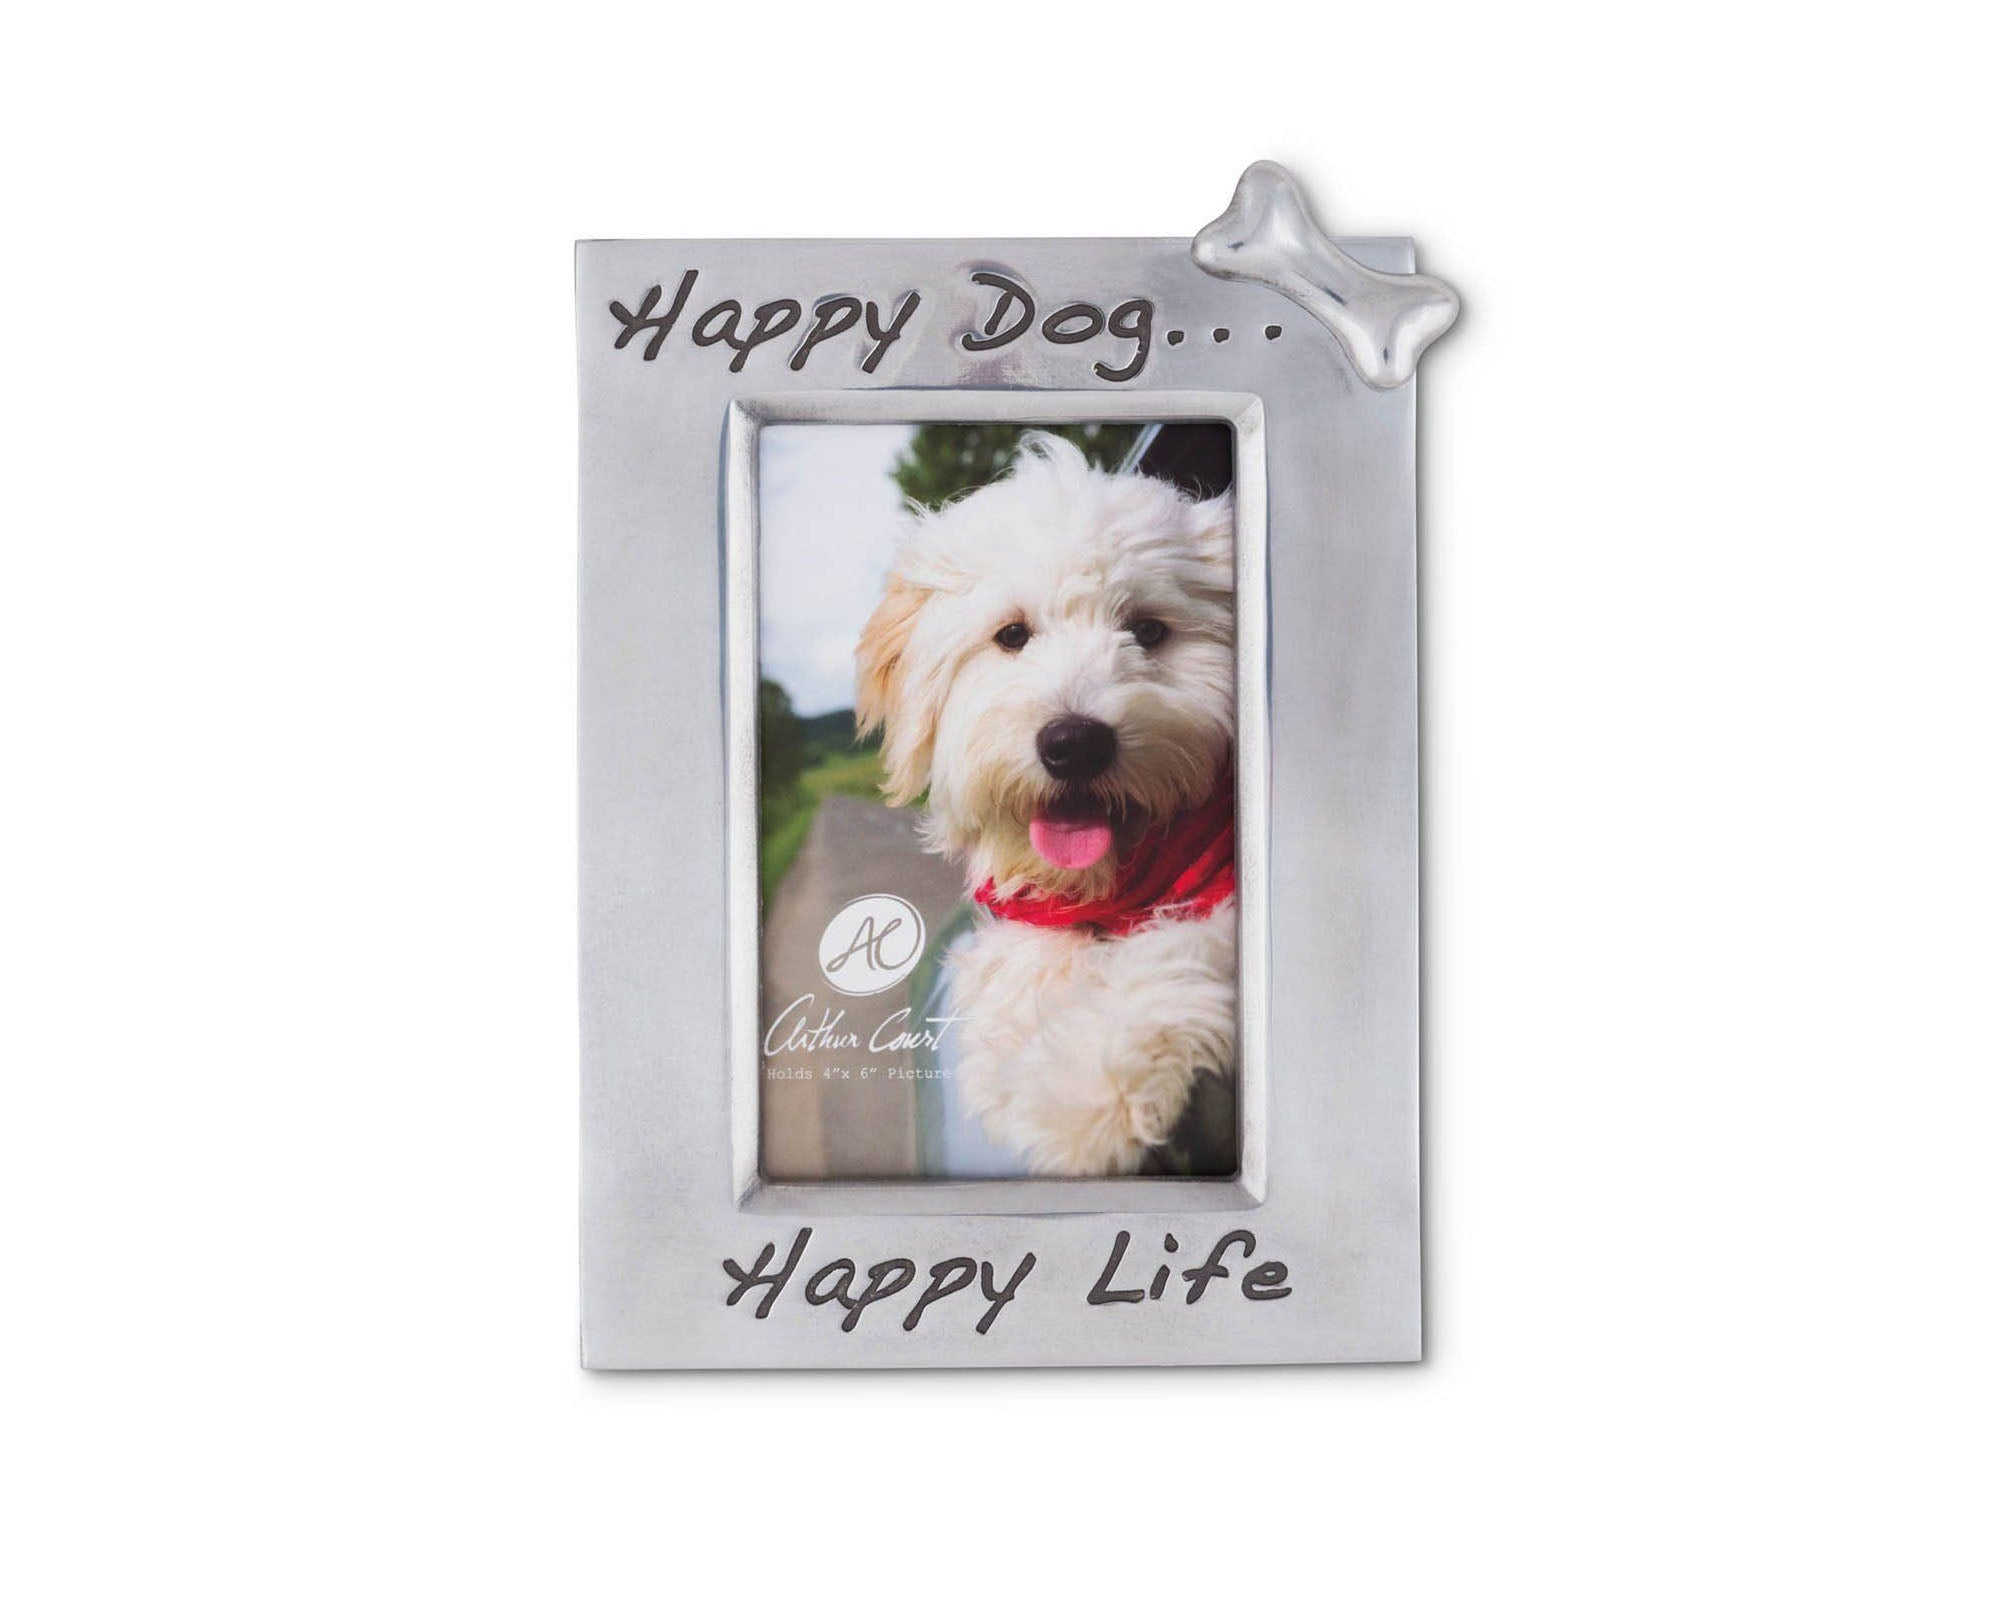 Happy Dog 4X6 Frame